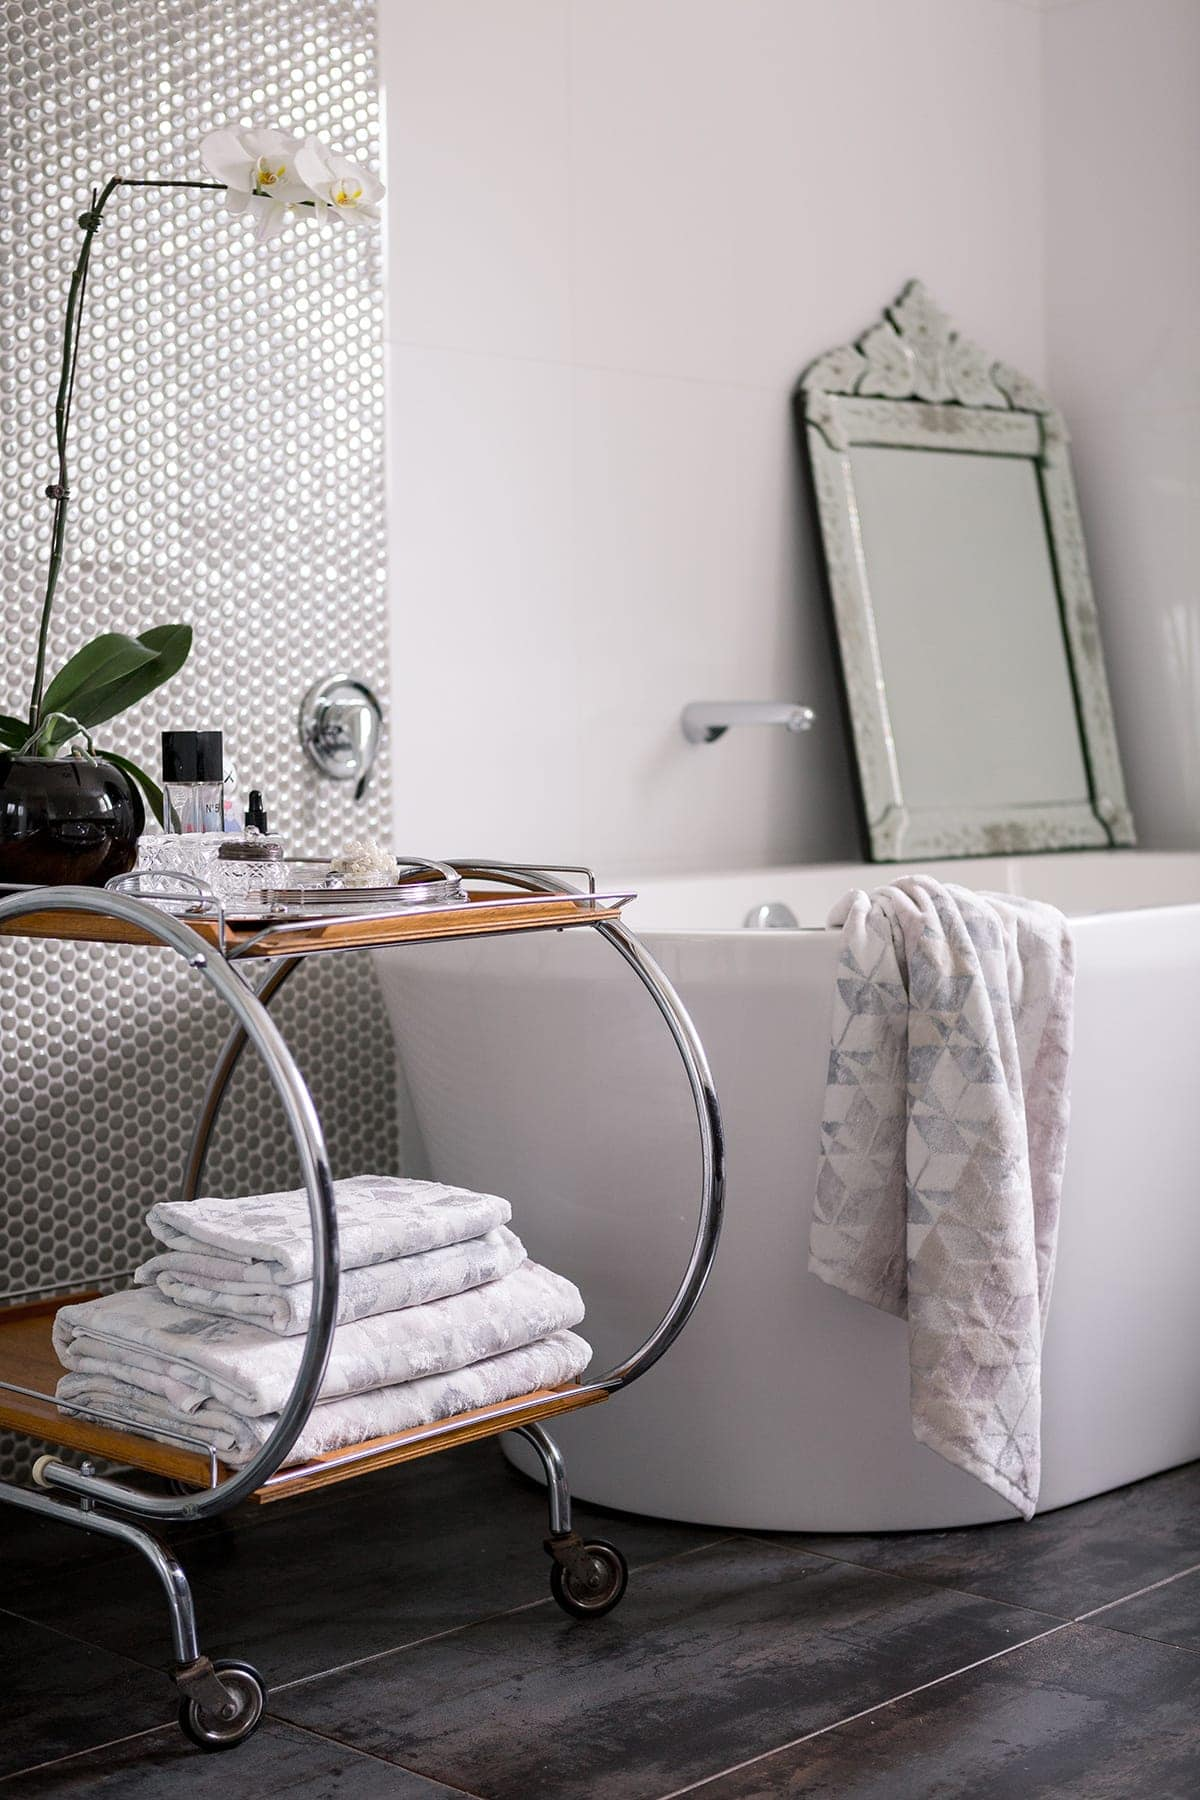 white freestanding bath tub with ornate white mirror leaning against wall